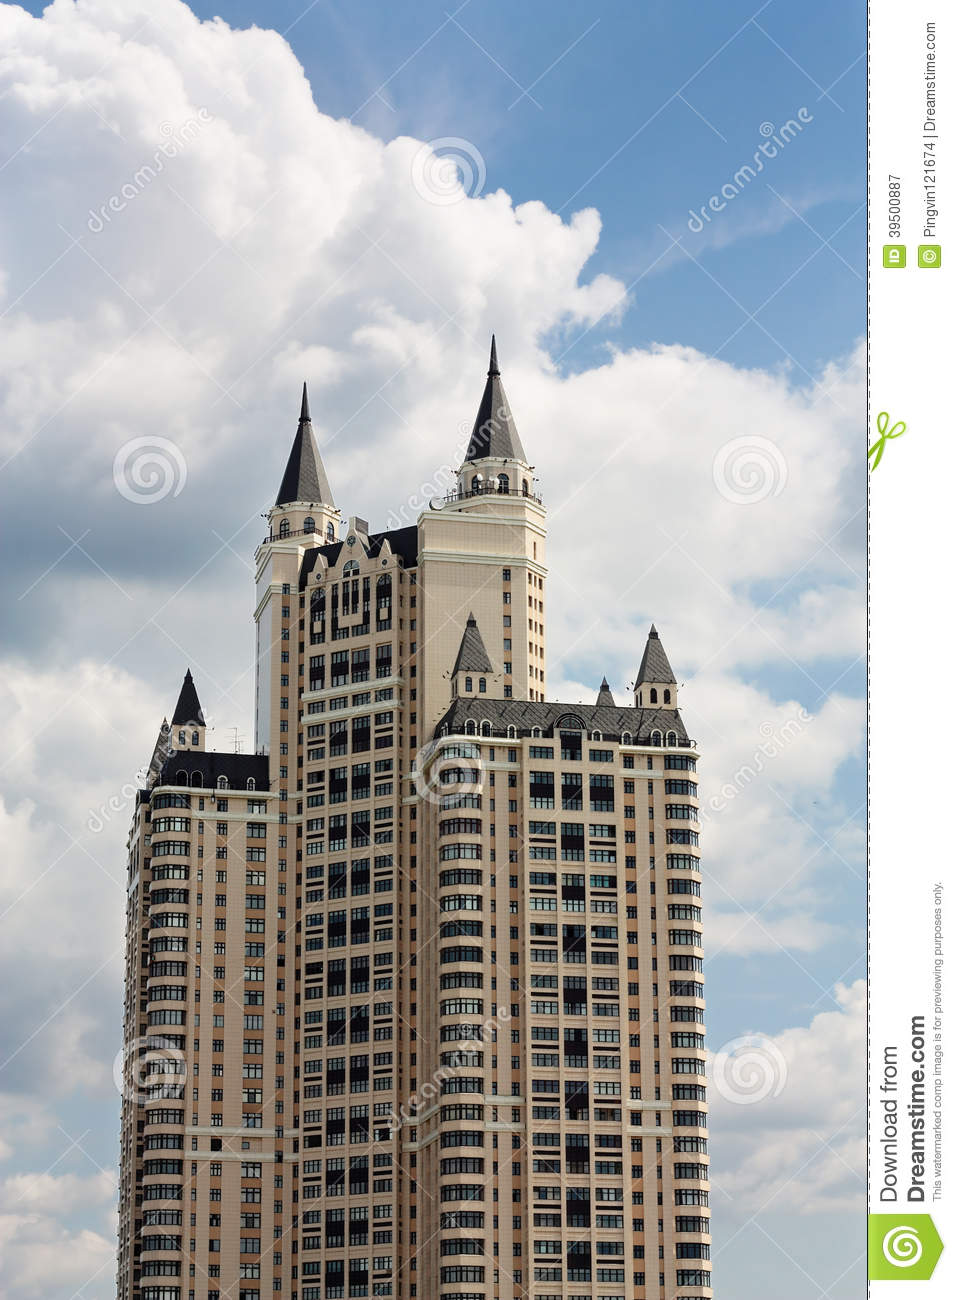 Building with turrets